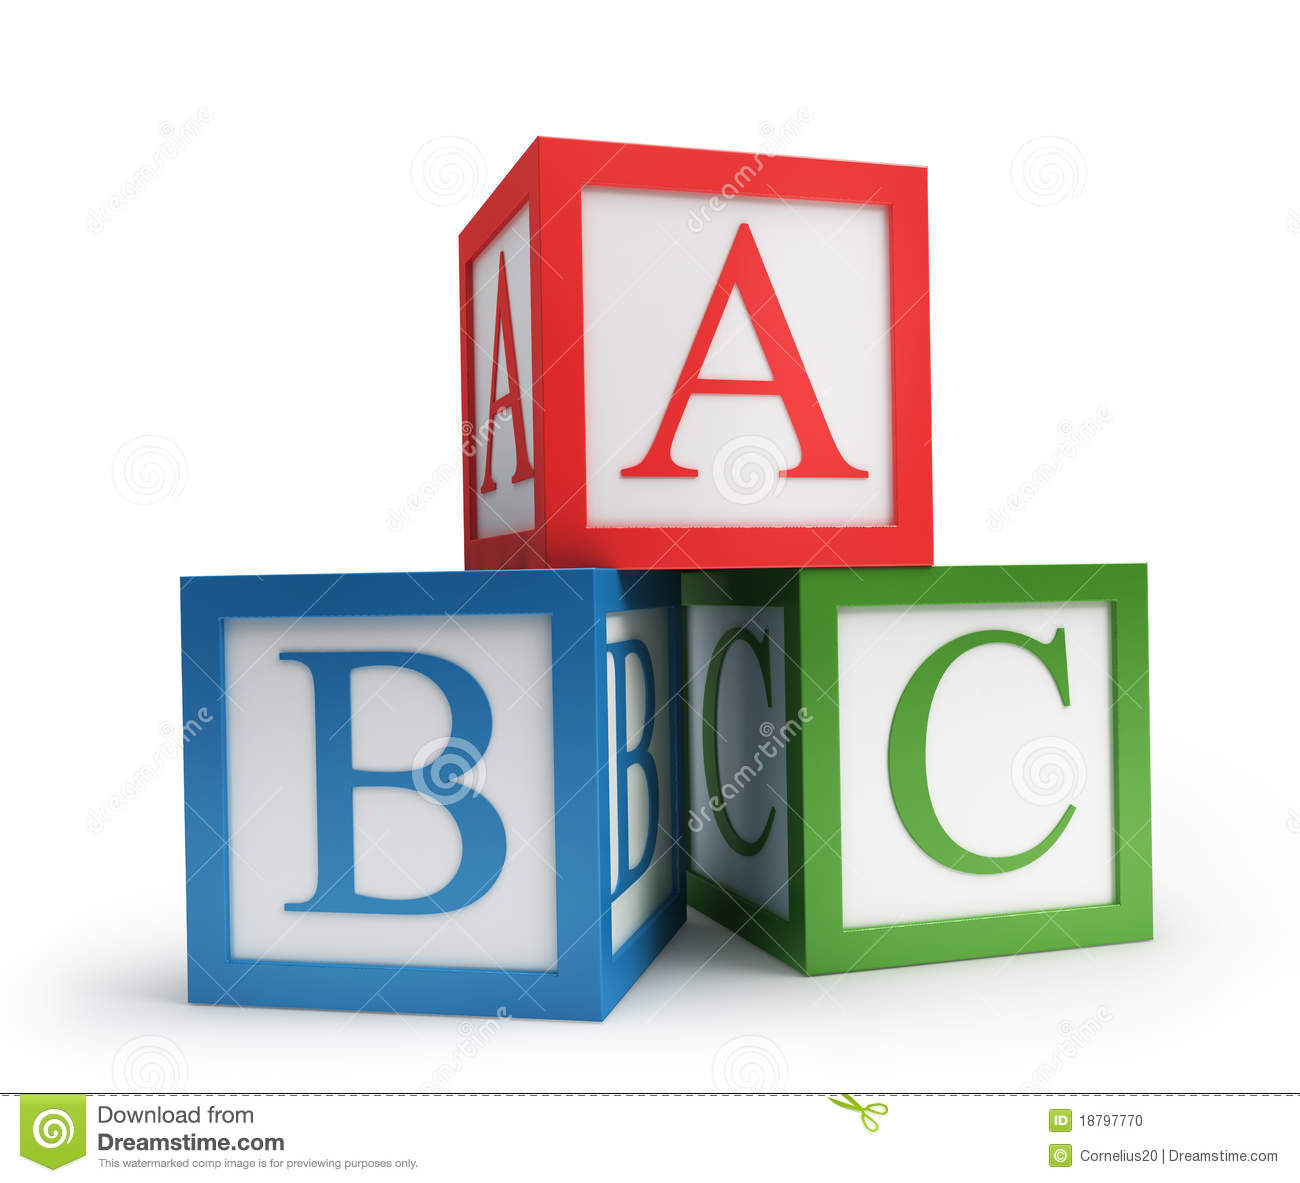 Abc cubes stock illustration. Image of alphabetical ...